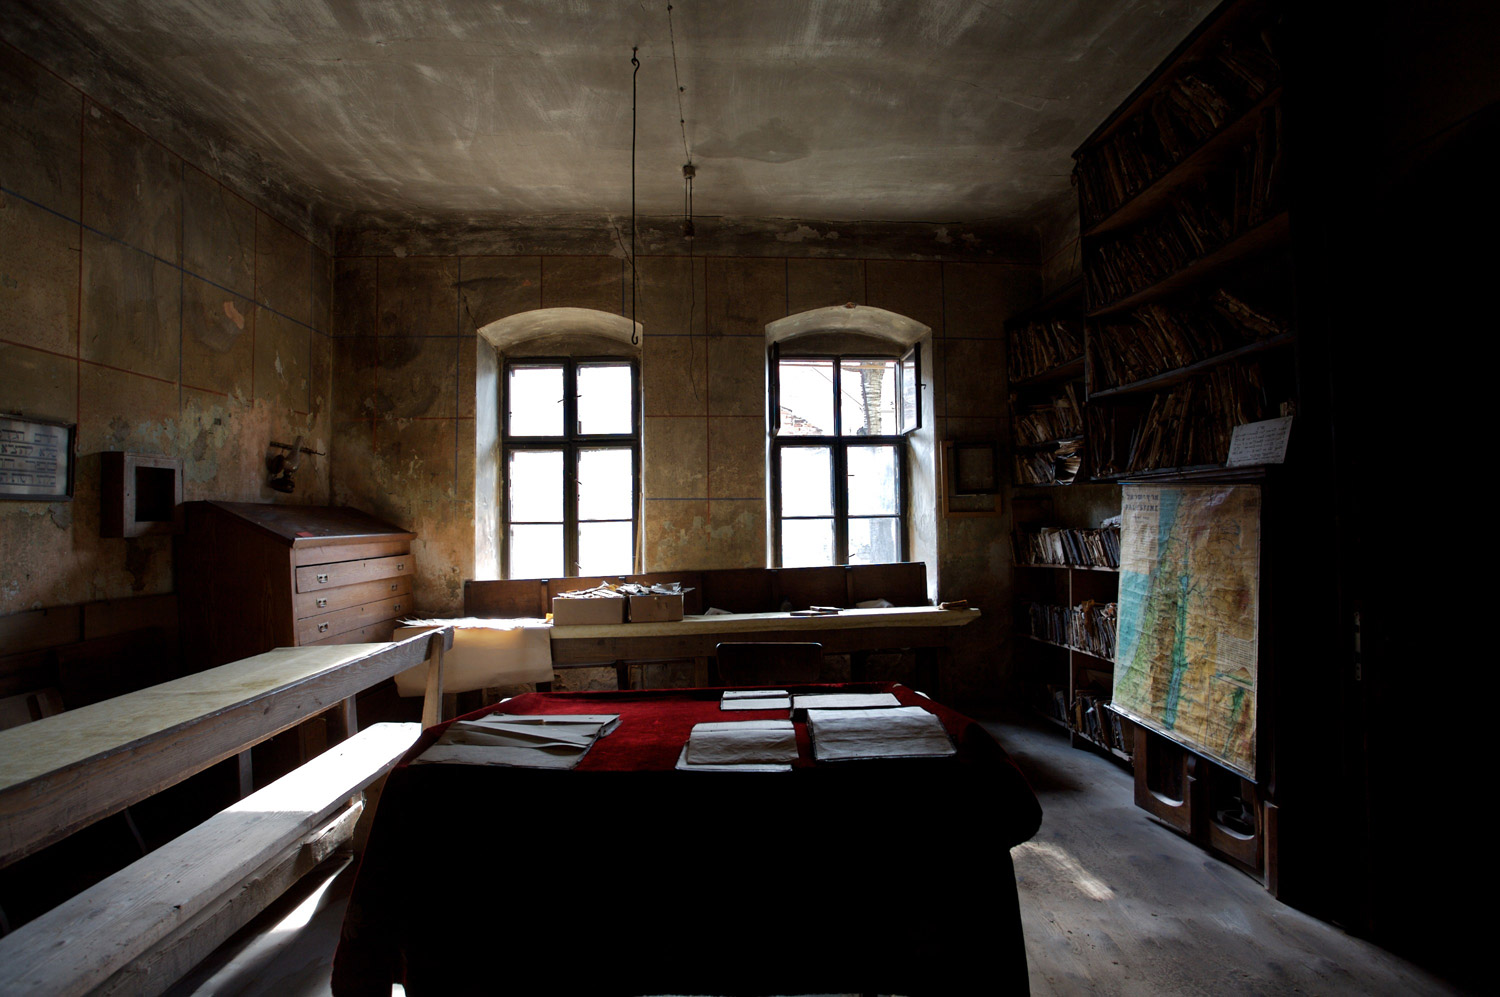 A school room as it was first discovered by Dojc and Krausova in March, 2006